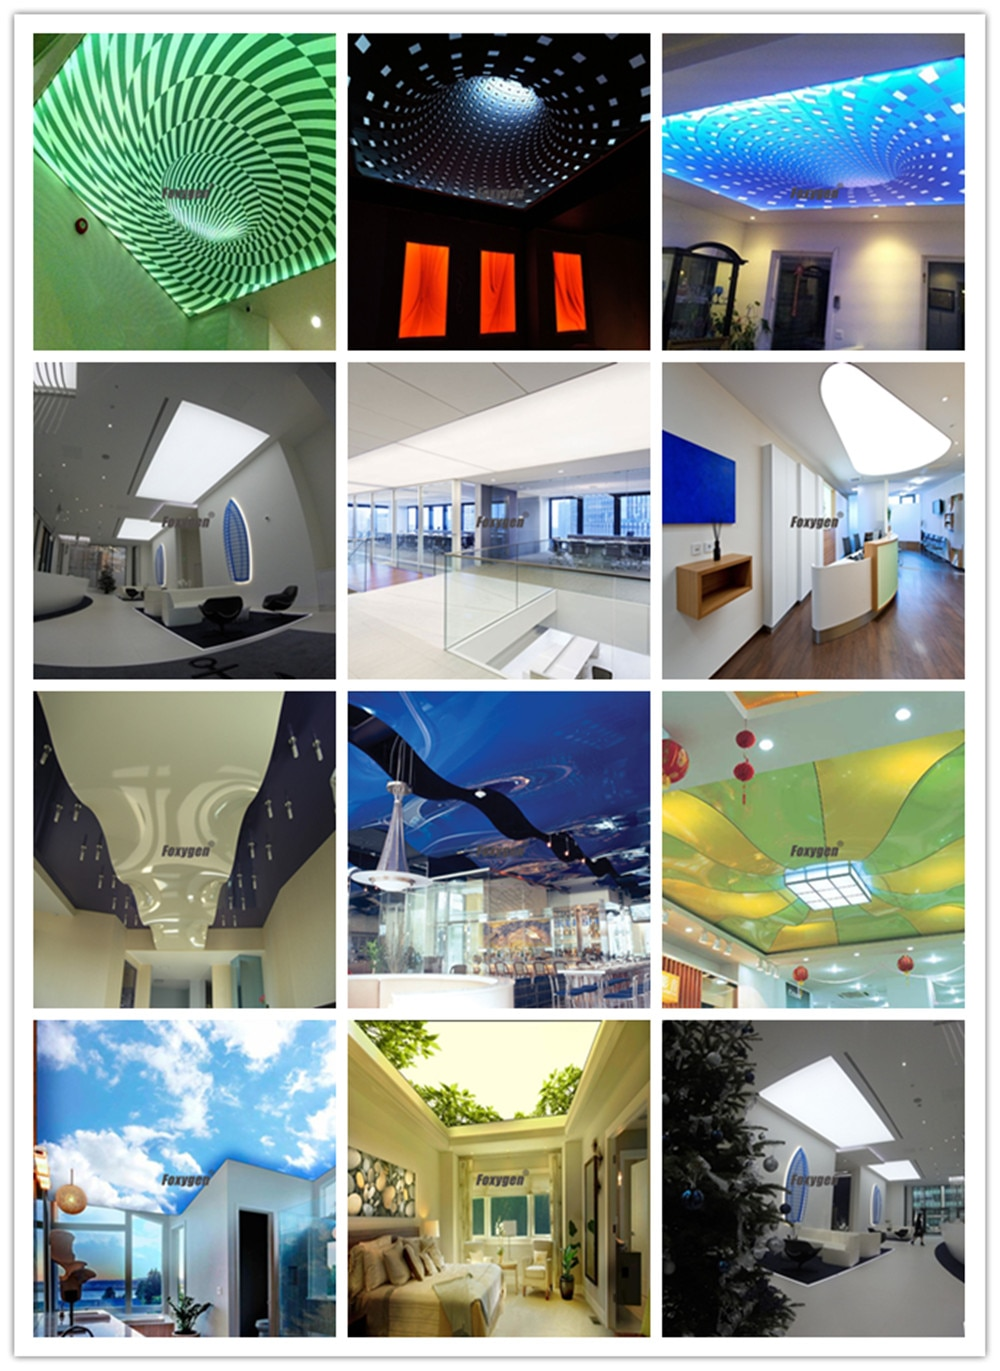 Foxygen uv and eco print pvc stretch fabric ceiling film blue 3d wave sky design for office hotel mall home price china export factory price (4)_副本